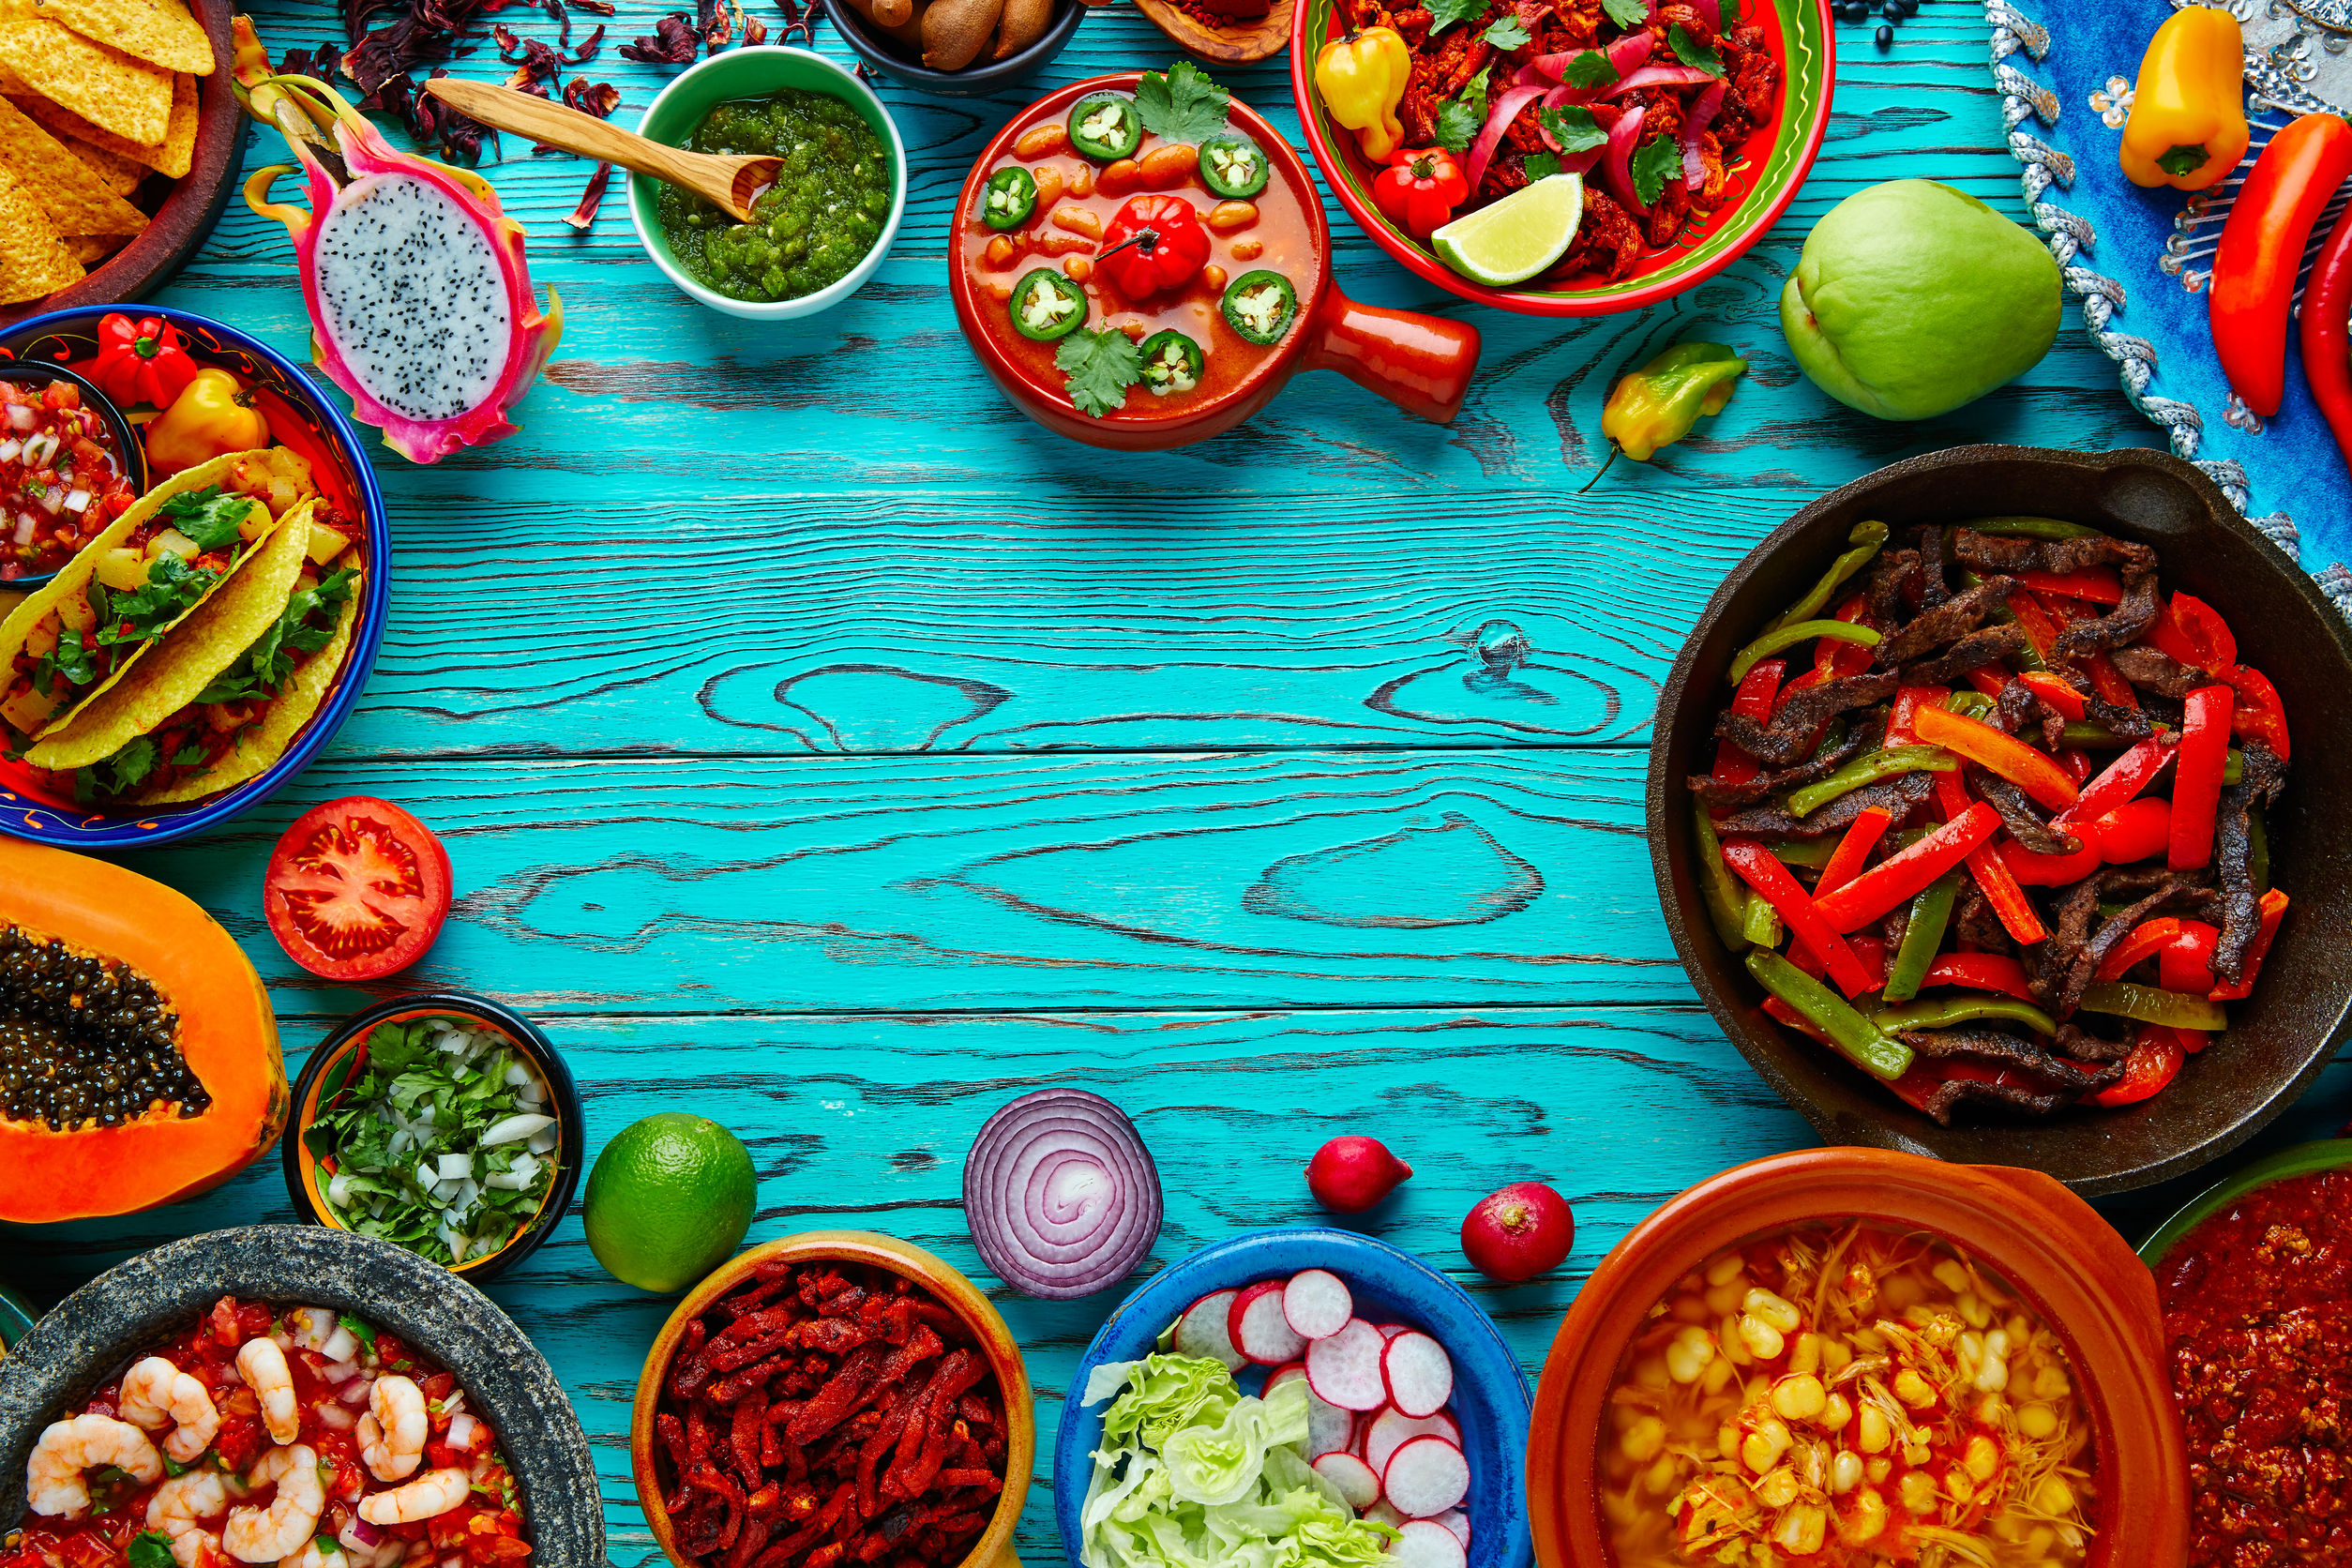 51858278 – mexican food mix copyspace frame colorful background mexico